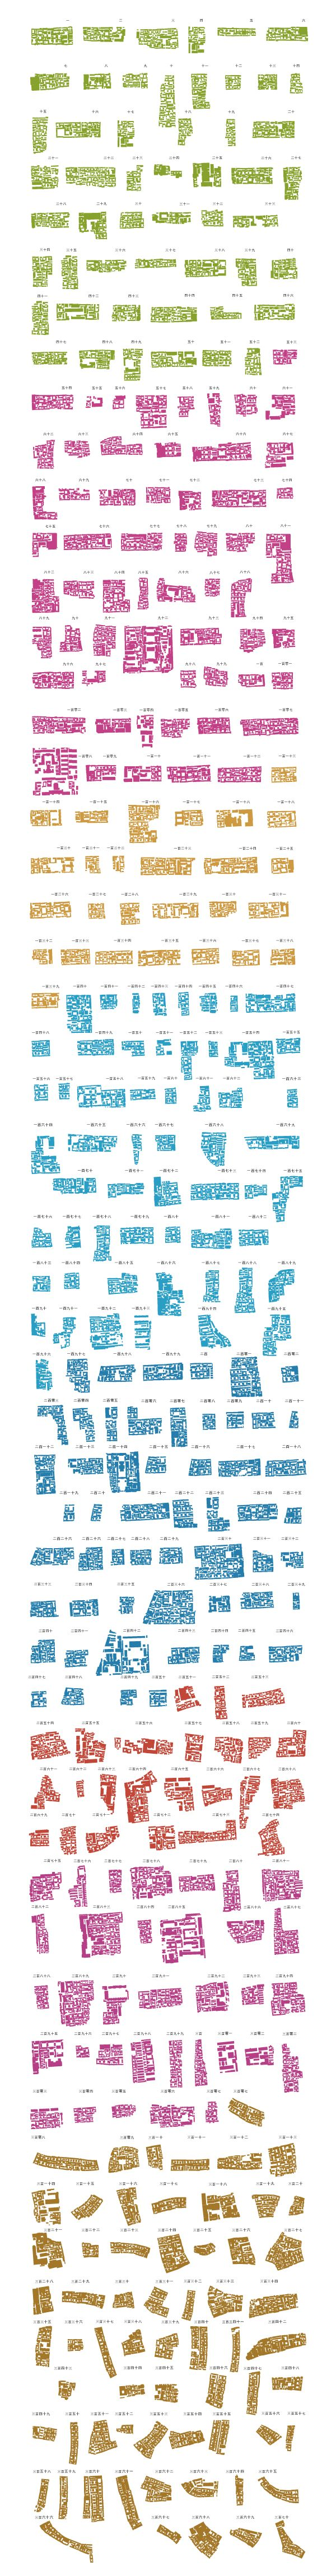 "The Patterns of the Urban Fabric of Beijing's Hutong: Part of Instant Hutong's Community Catalogue 2007, a catalog of hutong block patterns laid out as a ""series of 1500 communities of courtyard houses cut out and isolated from the map of downtown Beijing"". Via Ministry of Type, image sourced from Instant Hutong's portfolio on the Behance Network via bricoleurbanism.org #Beijing #Hutongs"